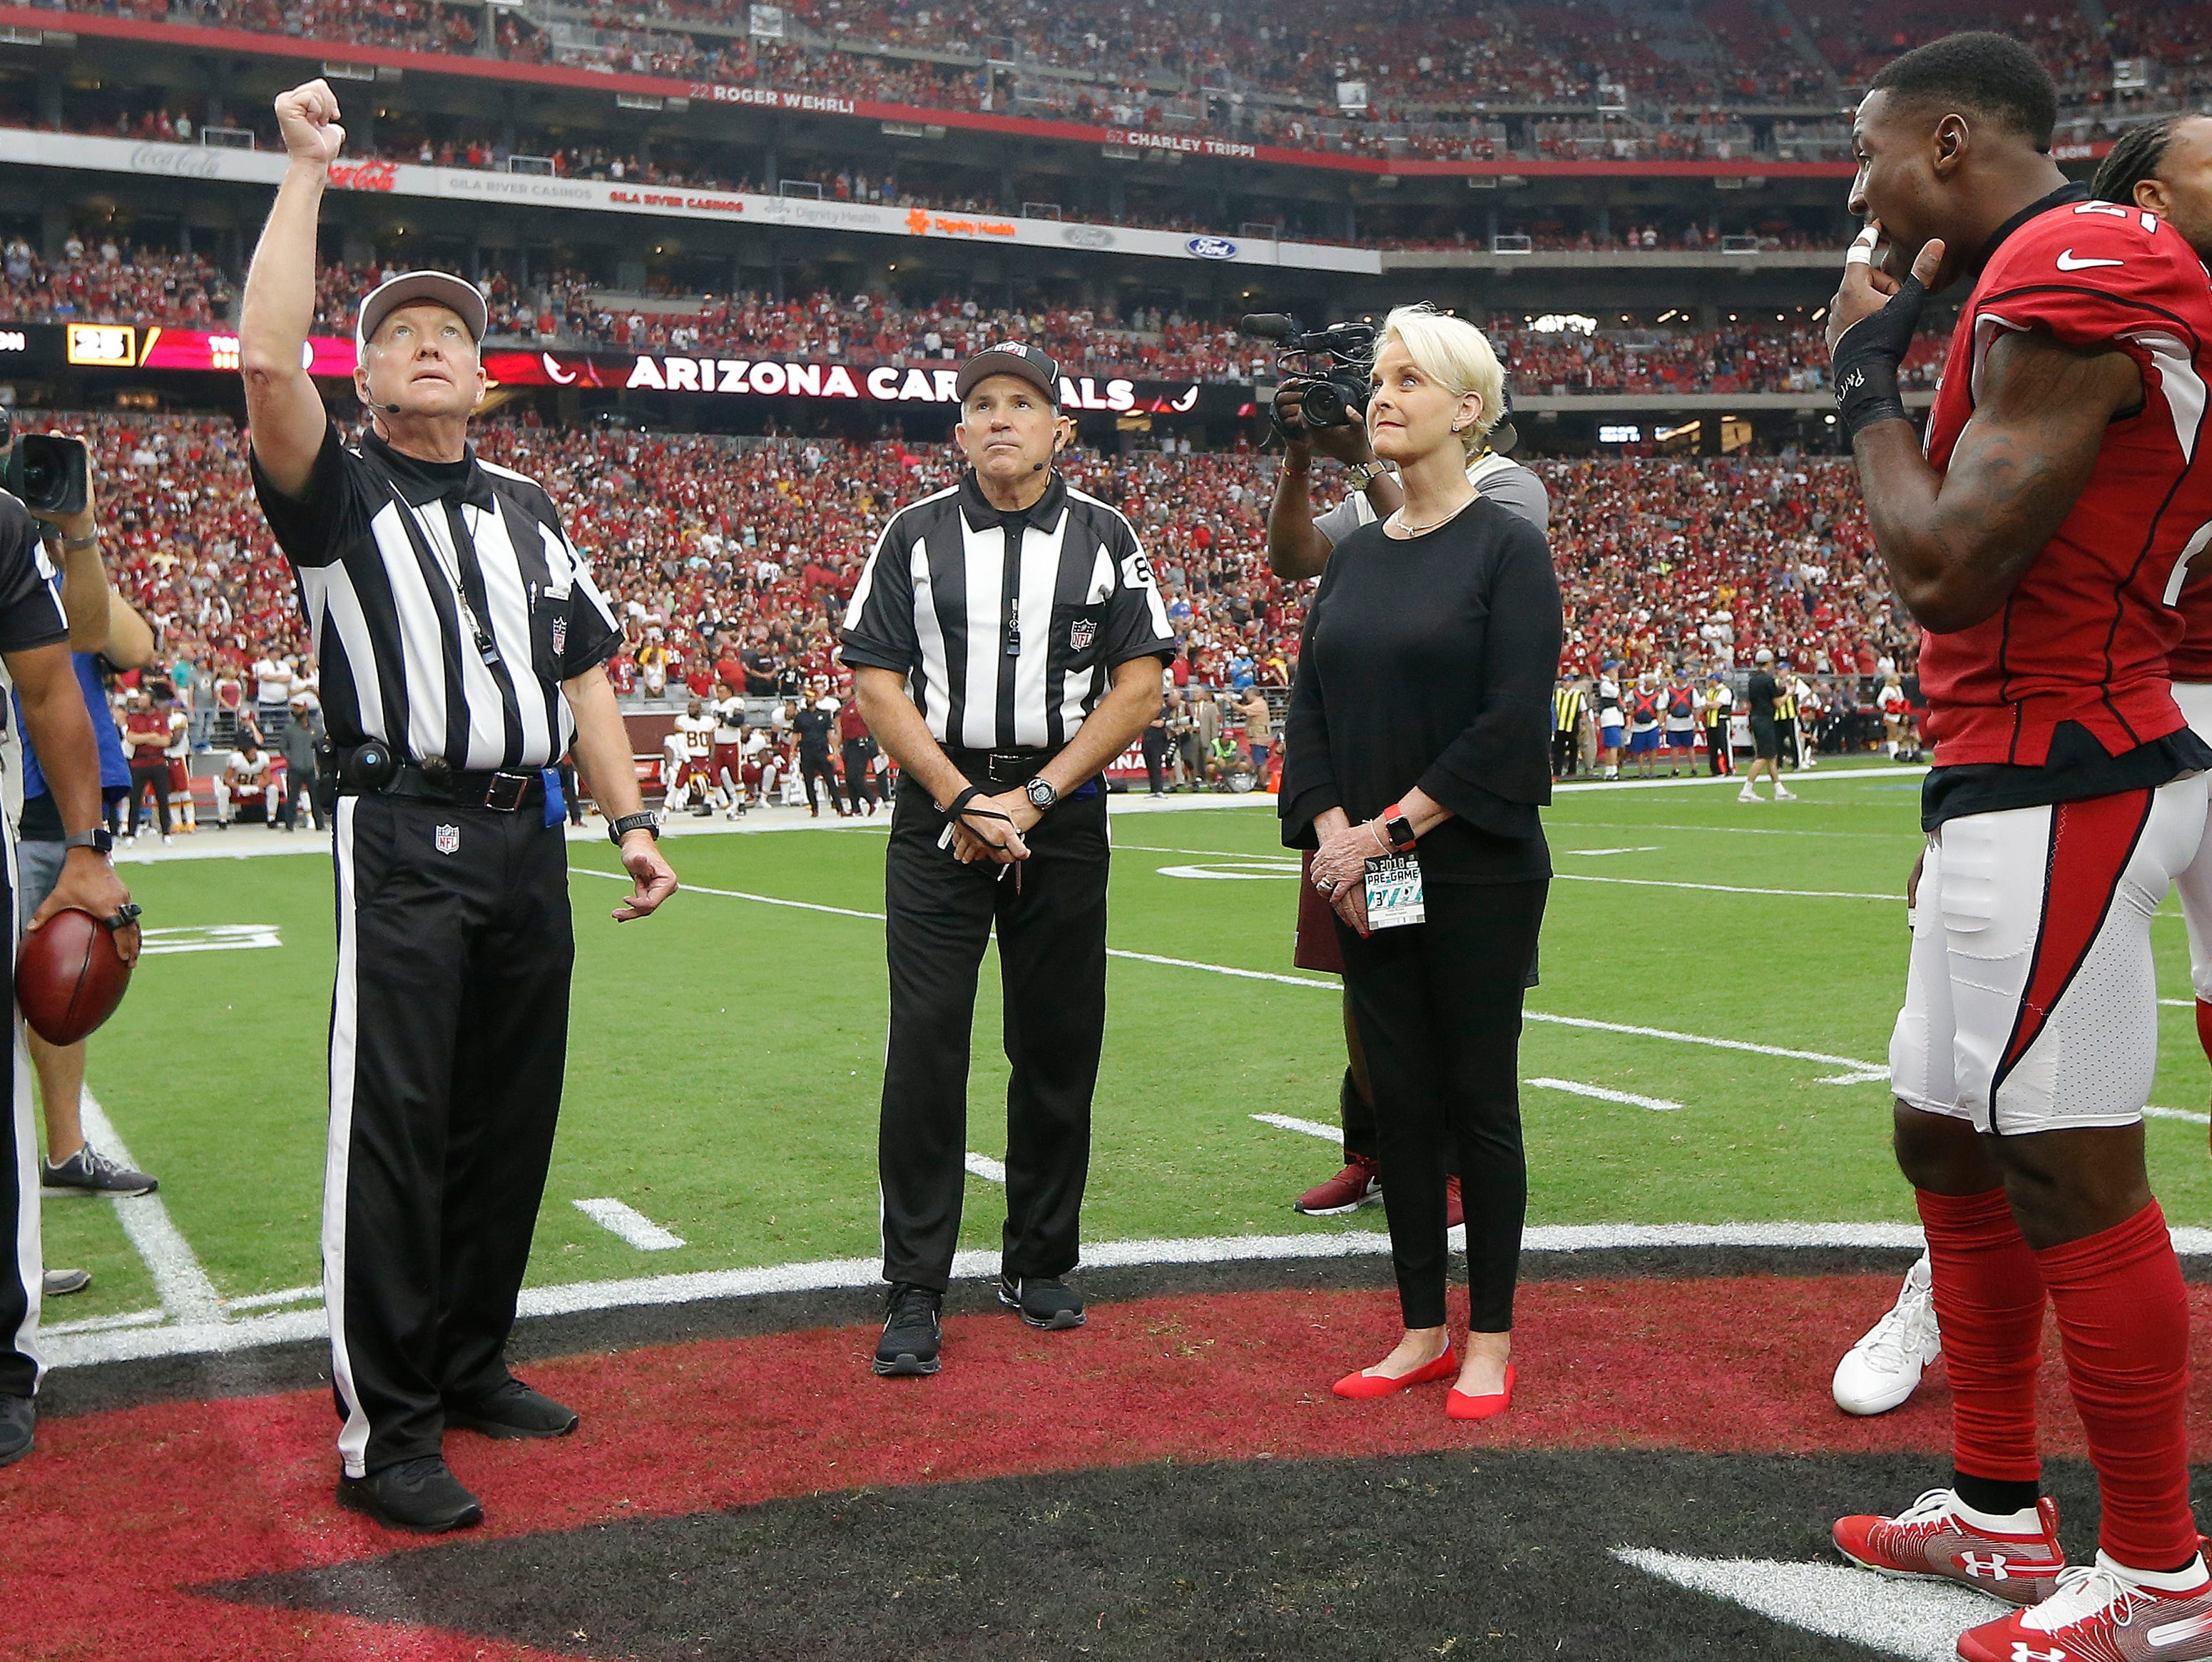 Cindy McCain, wife of the late U.S. Sen. John McCain, R-Ariz., stands with Arizona Cardinals and Washington Redskins players as an honorary team captain during the coin toss by referee Walt Coleman, left, prior to an NFL football game , Sept. 9, 2018, in Glendale, Ariz.